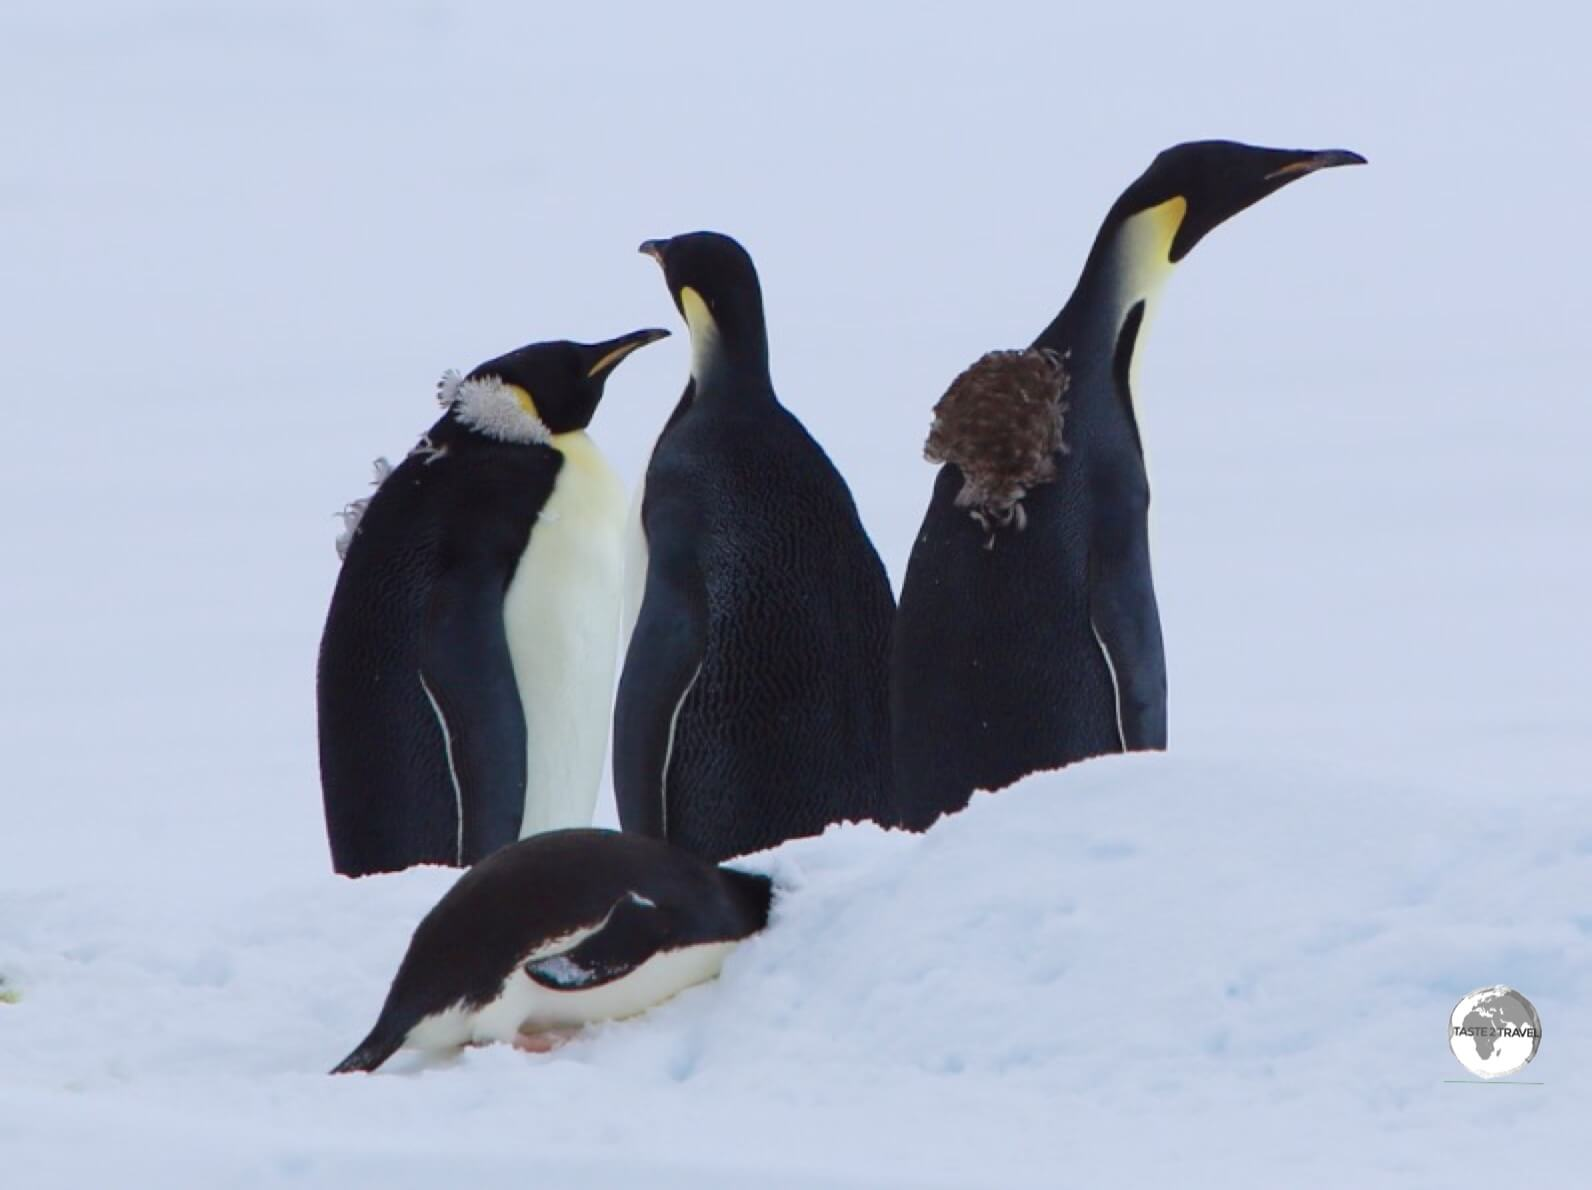 Emperor penguins in Crystal Sound still bearing the fluffy feathers from their annual Catastrophic Molt.